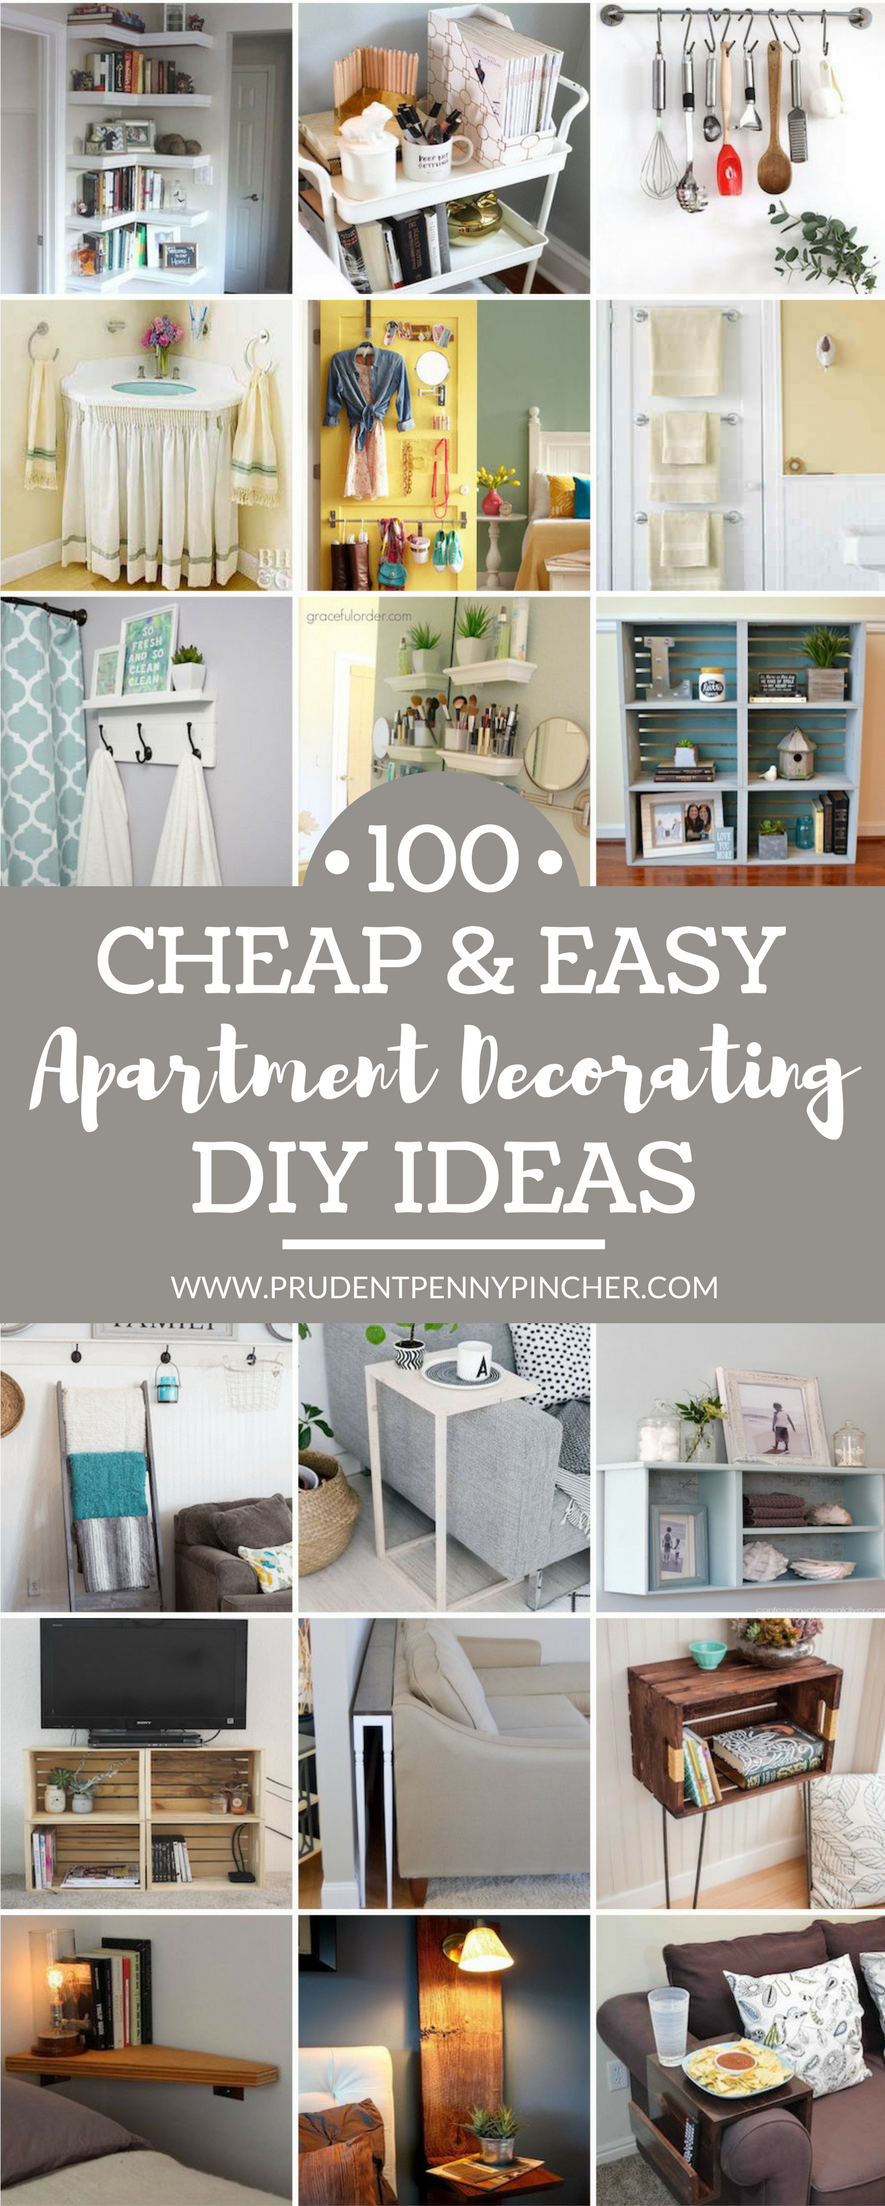 Apartment Decorating Diy 100 cheap and easy diy apartment decorating ideas - prudent penny